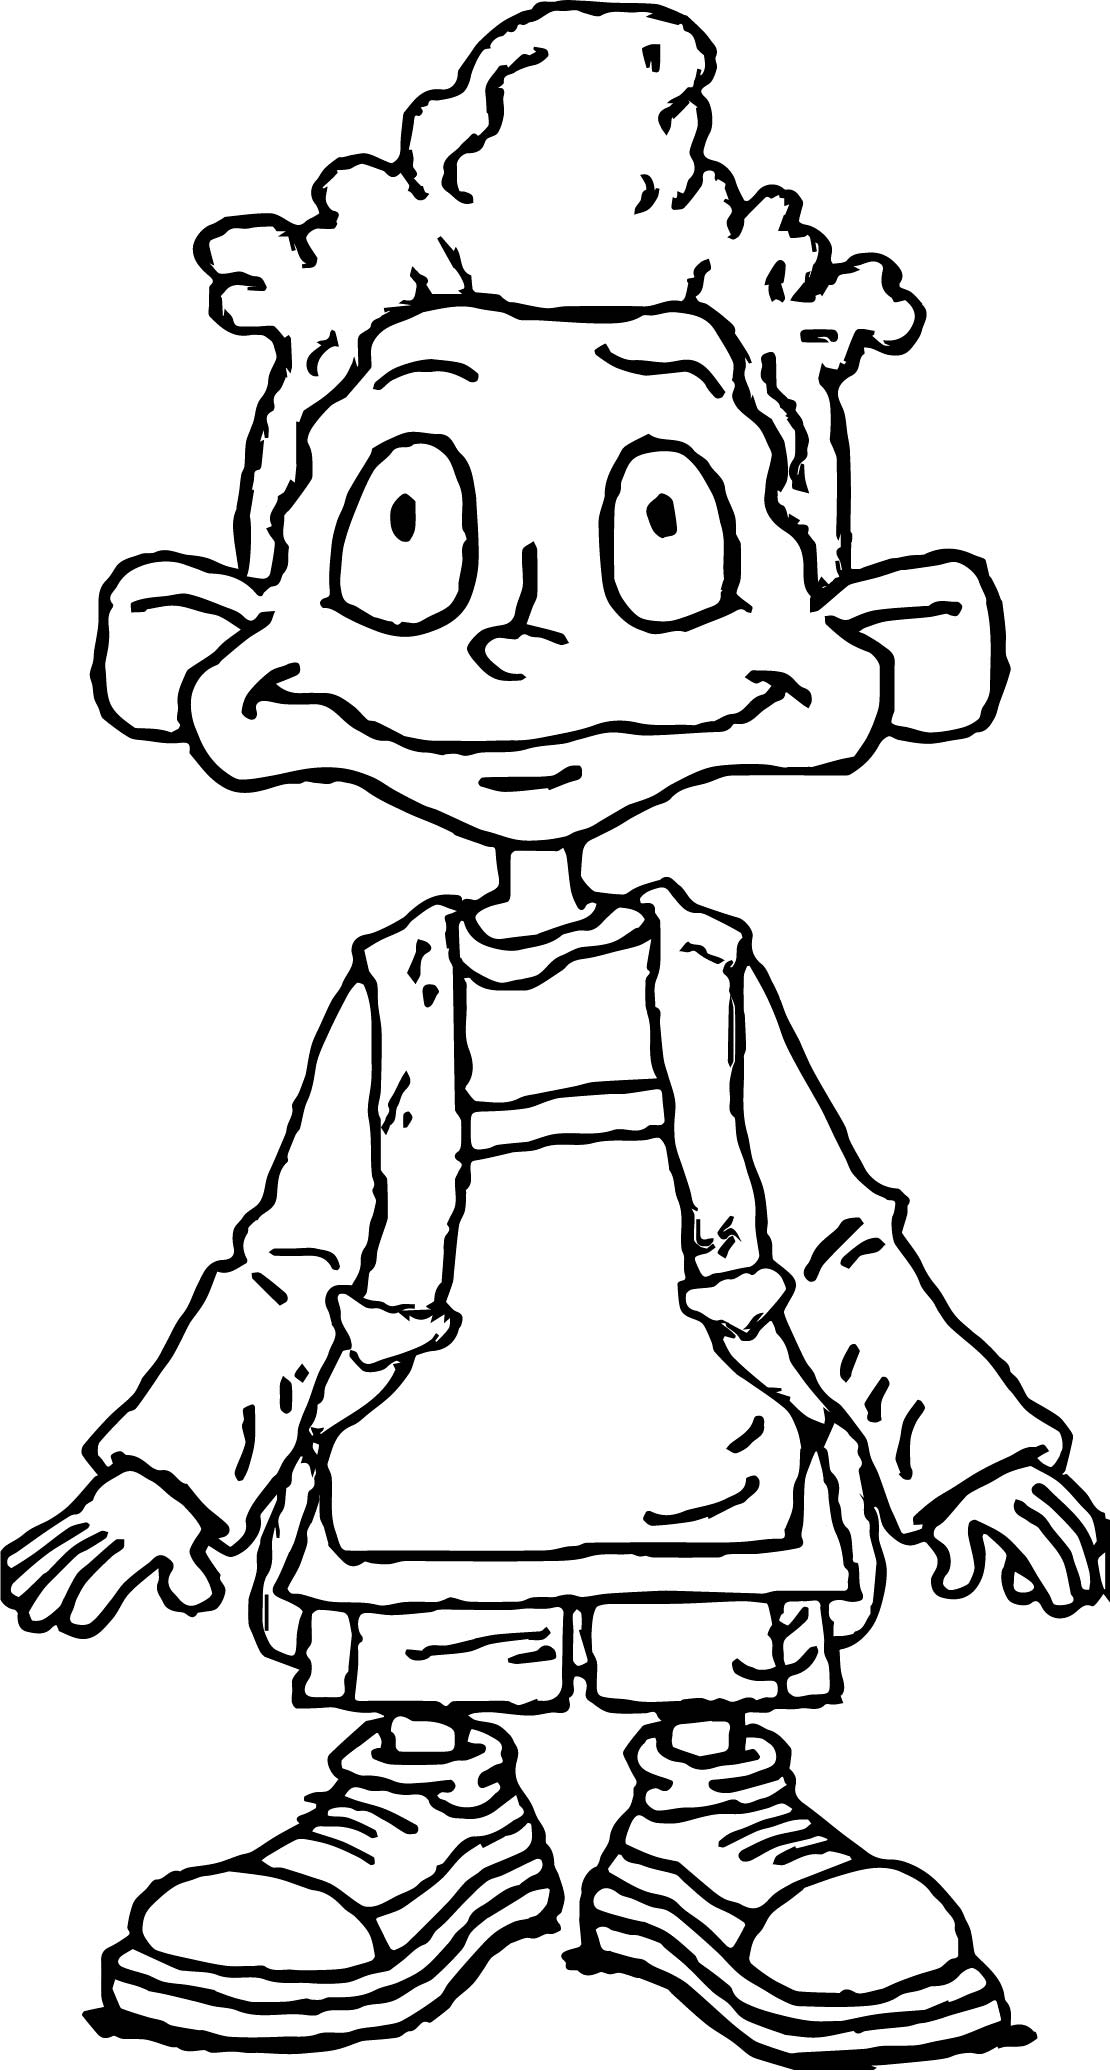 Dil Pickles Rugrats All Grown Up Coloring Page